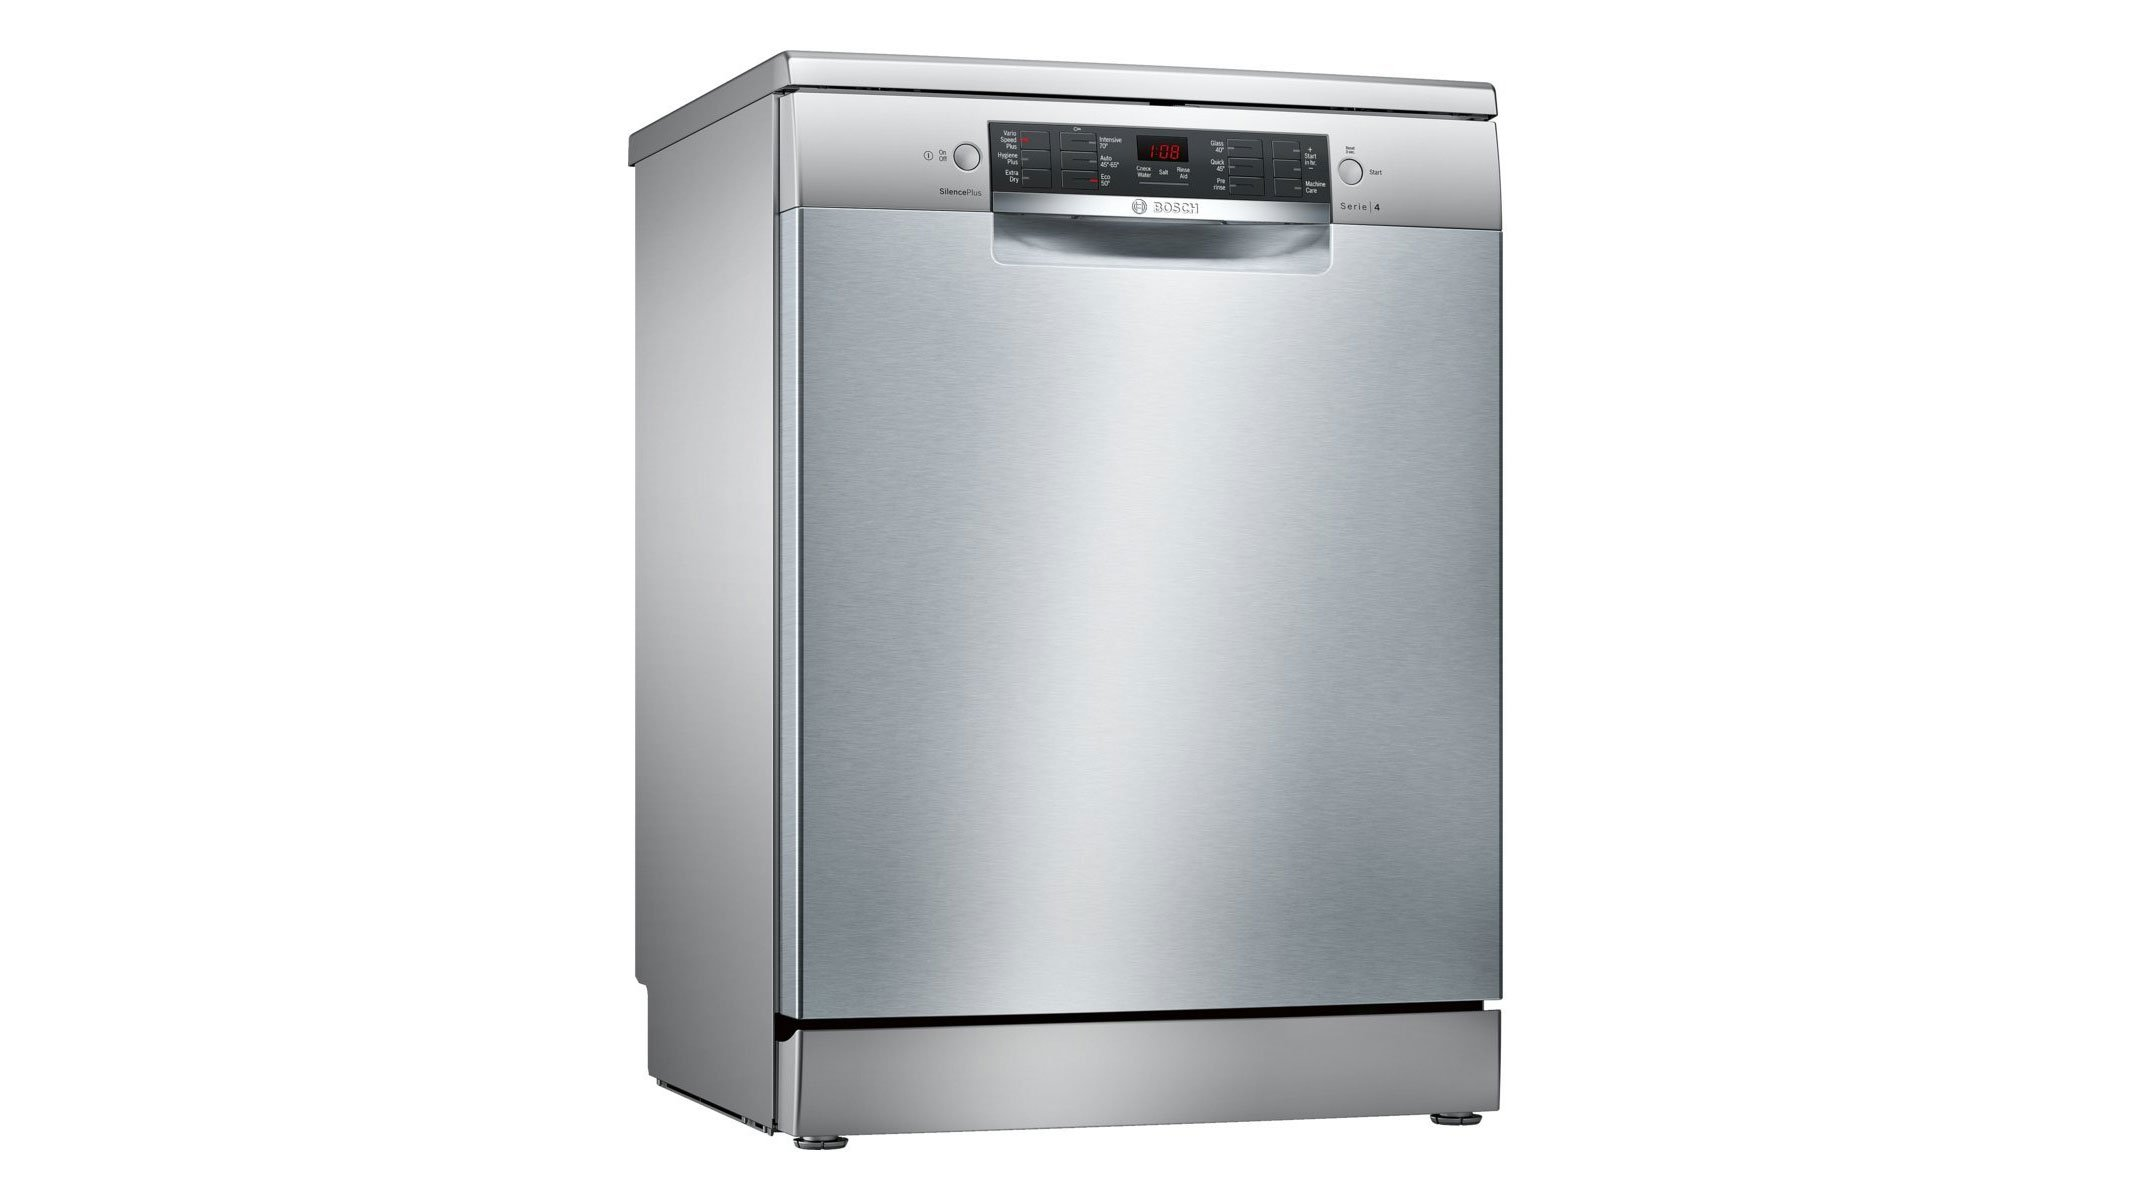 best dishwasher under 500. It\u0027s Especially Good At Drying Crockery And Plastics With Minimal Streaking. Its Six Programmes Encompass A Range Of Washing Modes: There\u0027s An Intensive Best Dishwasher Under 500 S